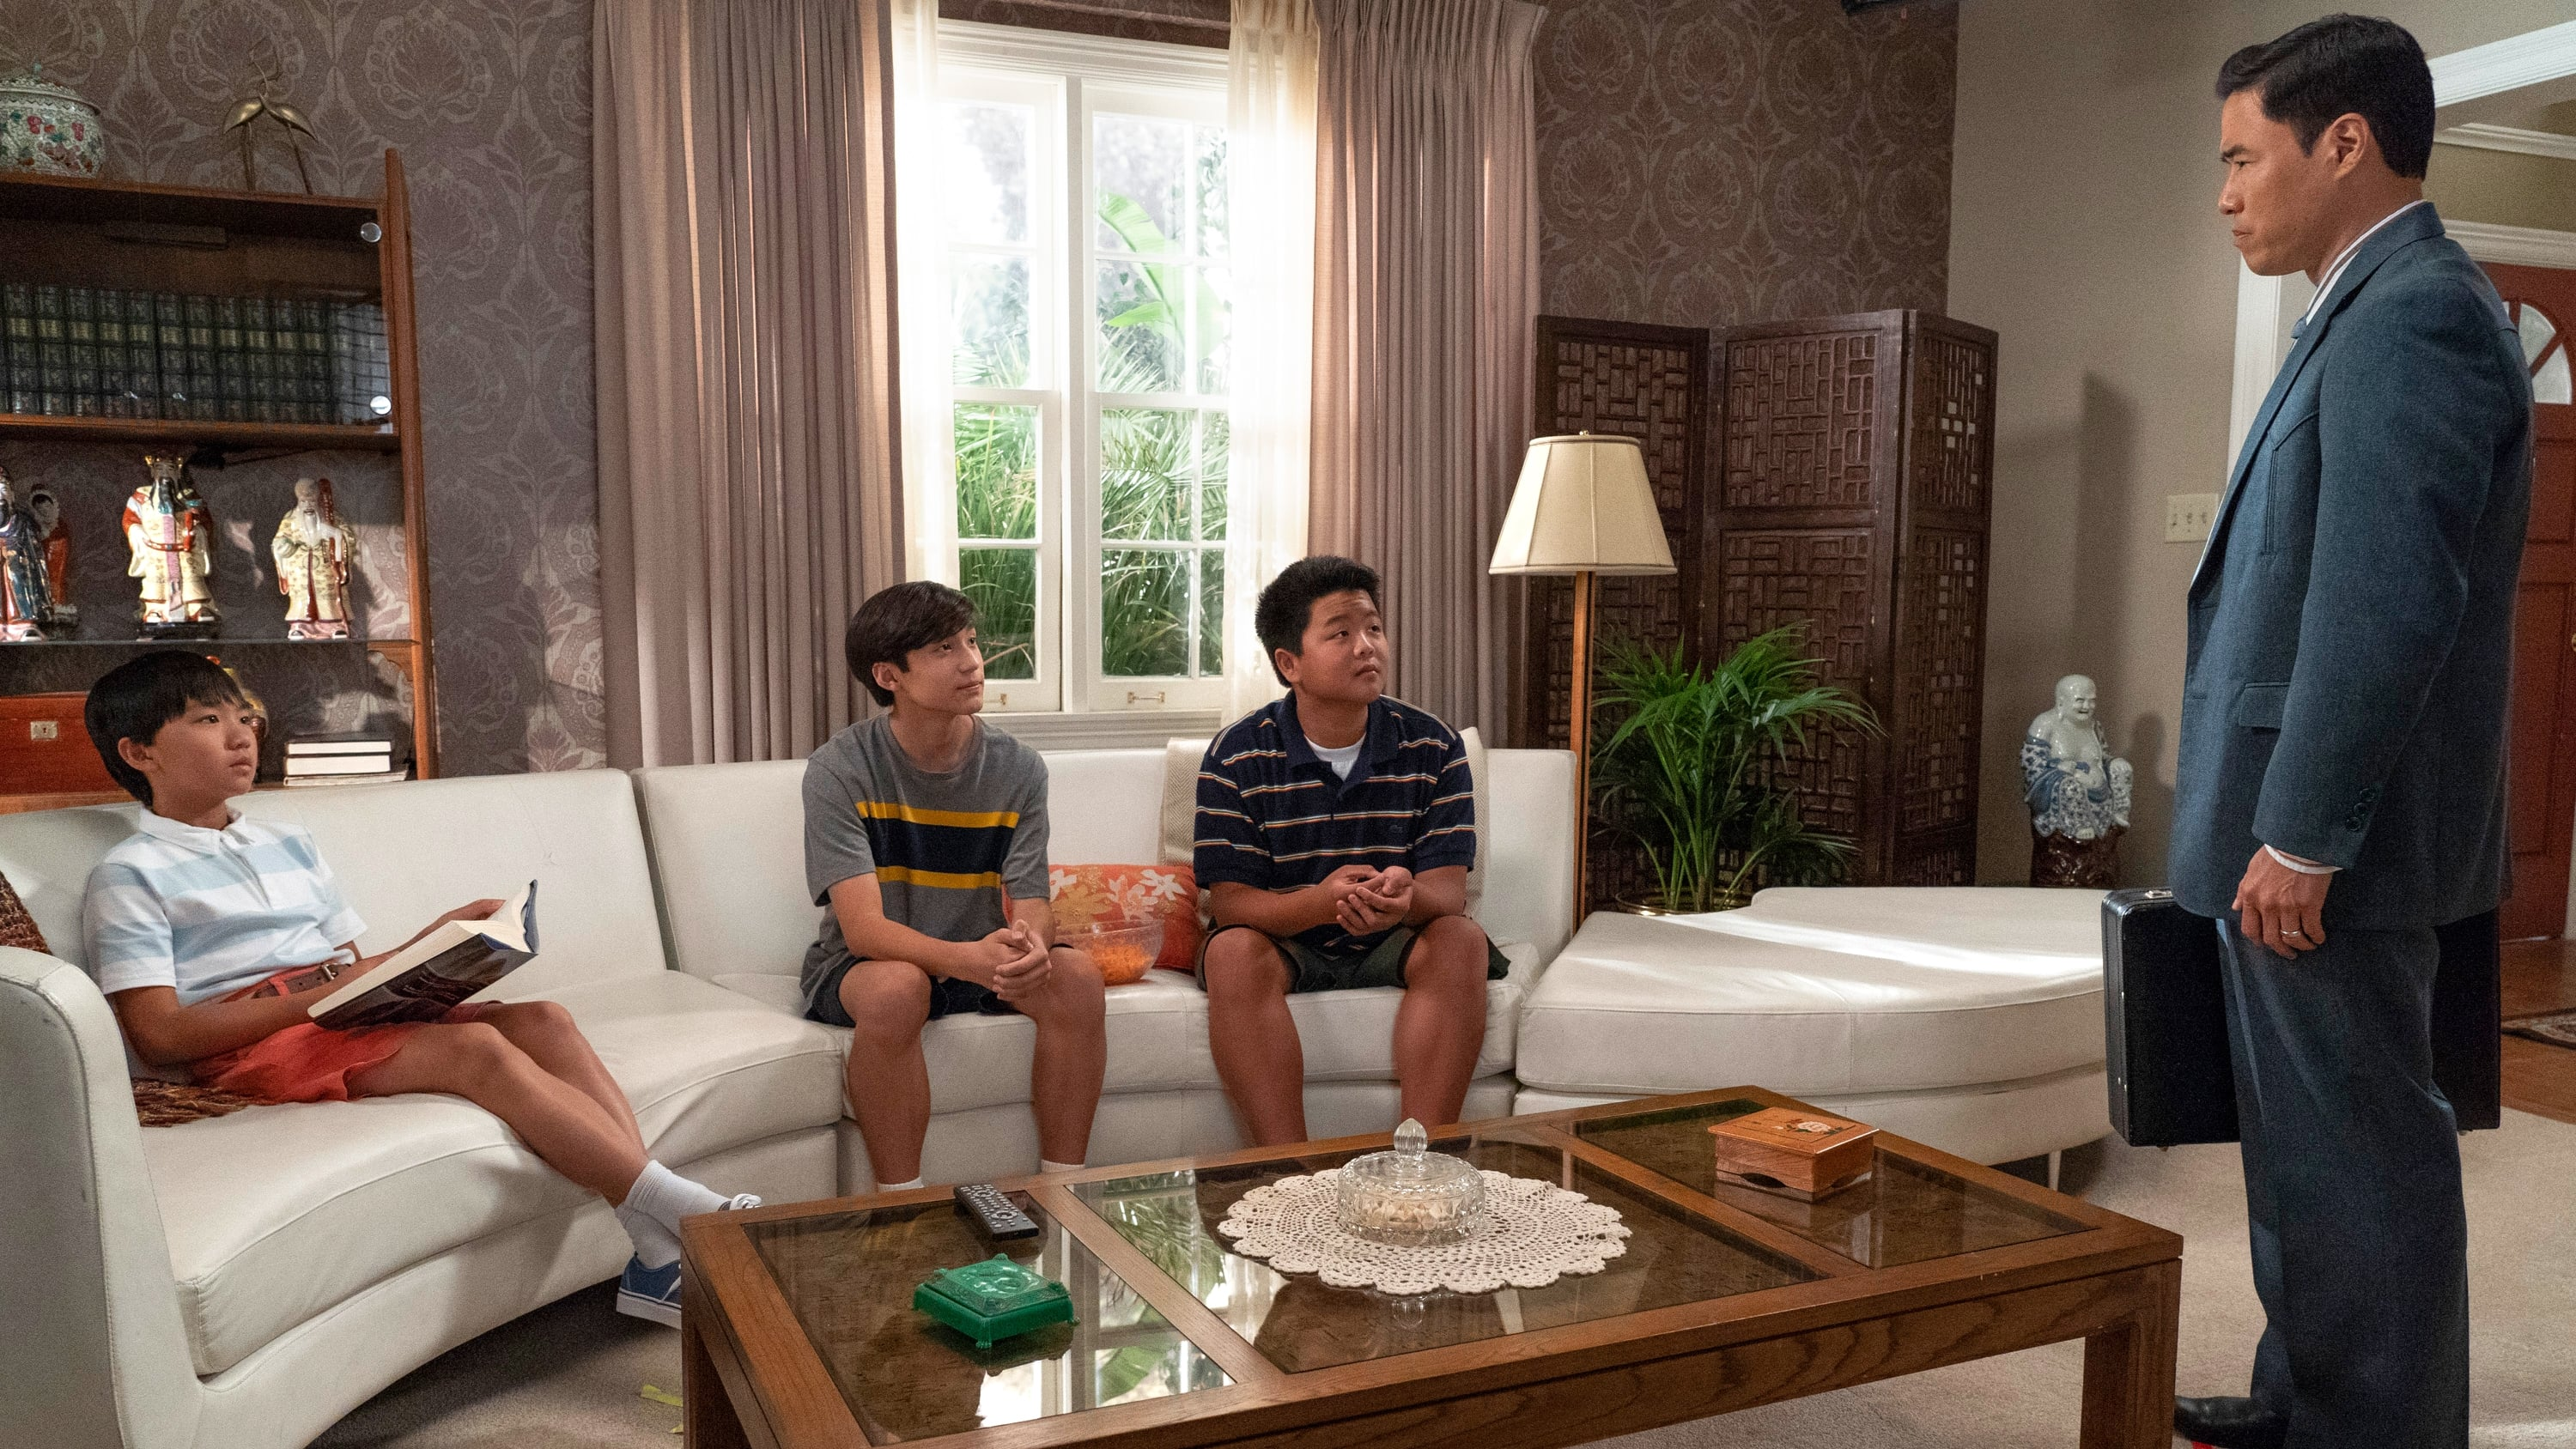 fresh off the boat season 5 episode 2 s05e02 just watch openload